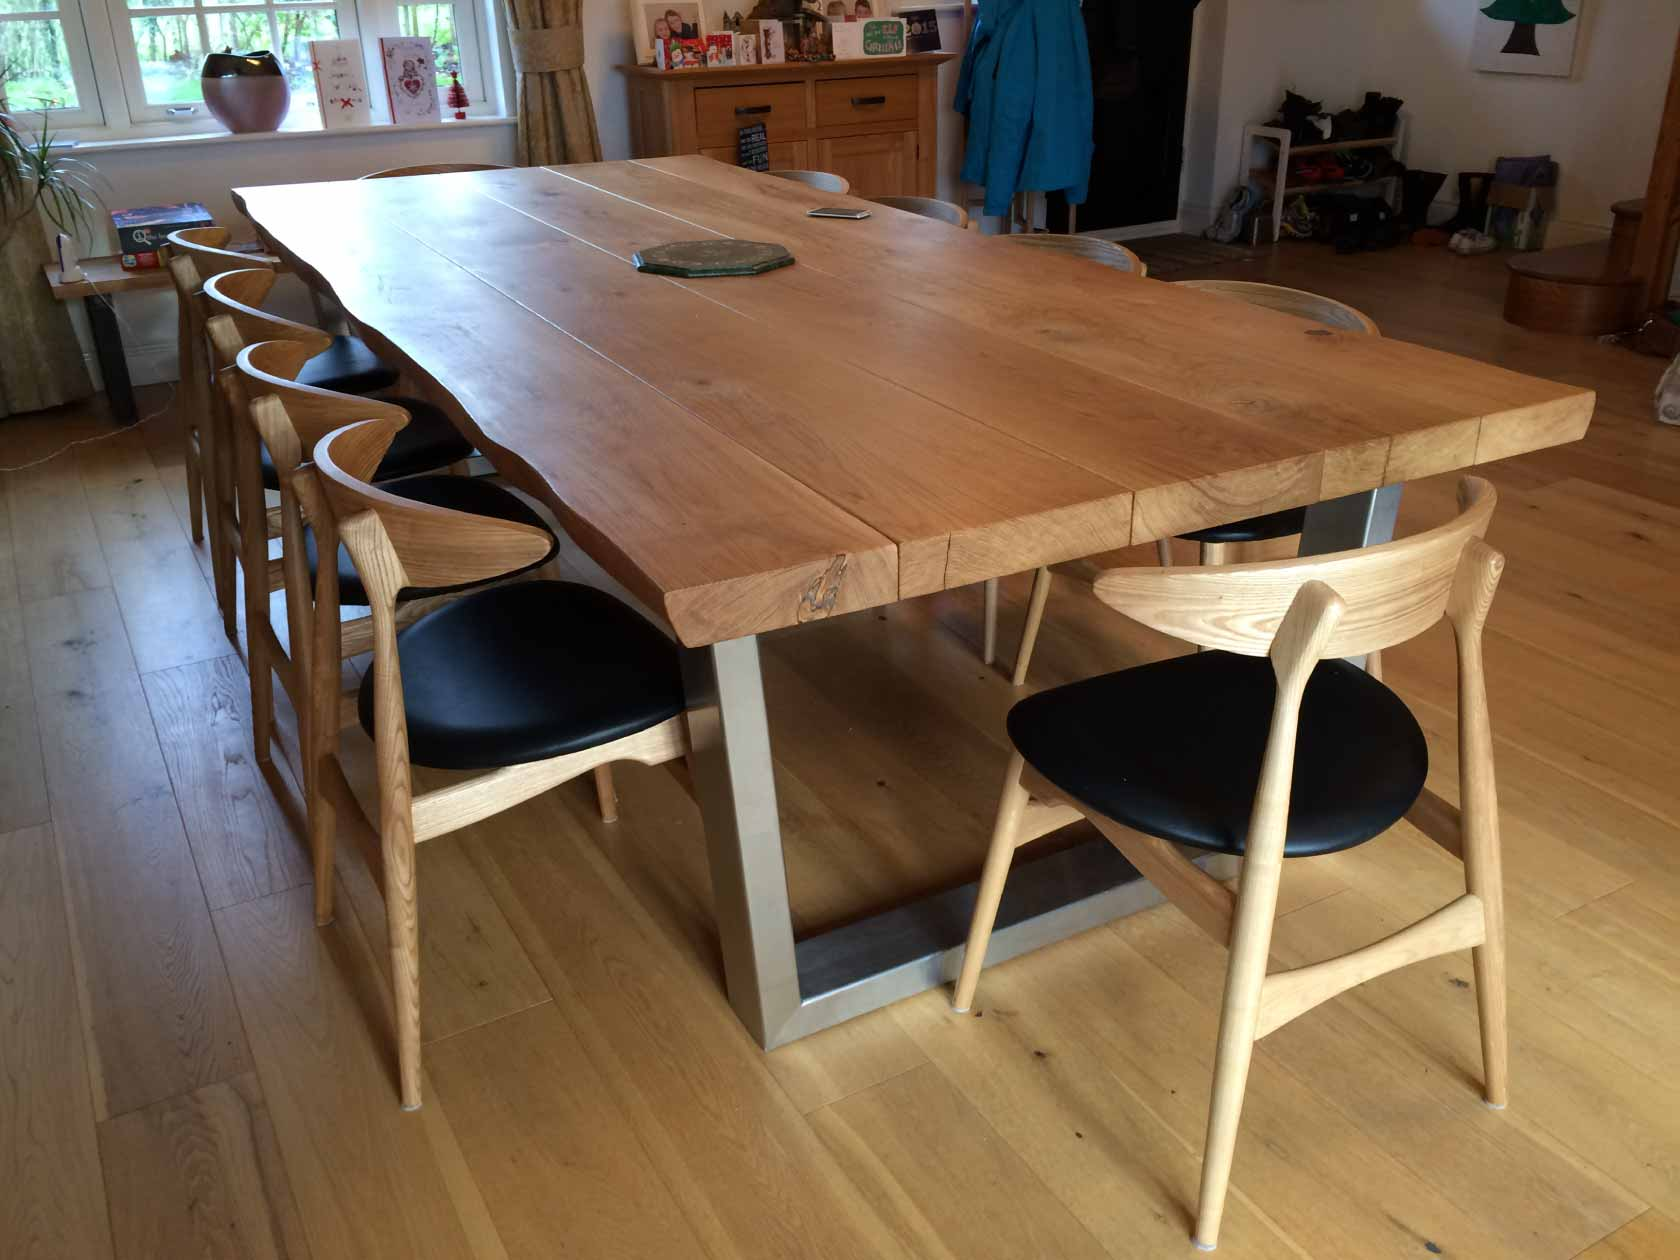 rustic-dining-table-from-abacus-tables-3m-x-1.3m-project-251